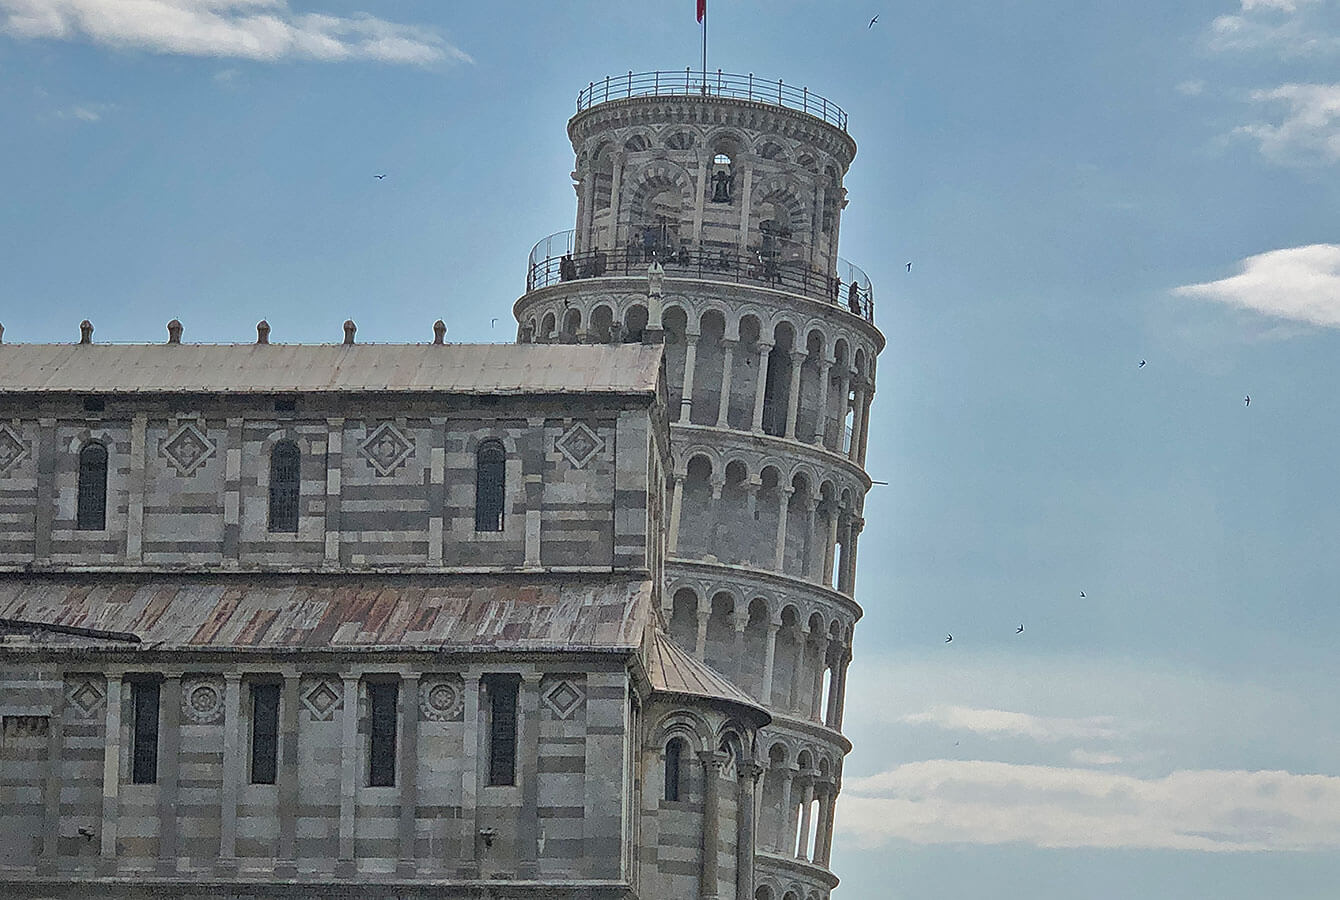 The Campanile, the Leaning Tower of Pisa, Italy, Tuscany